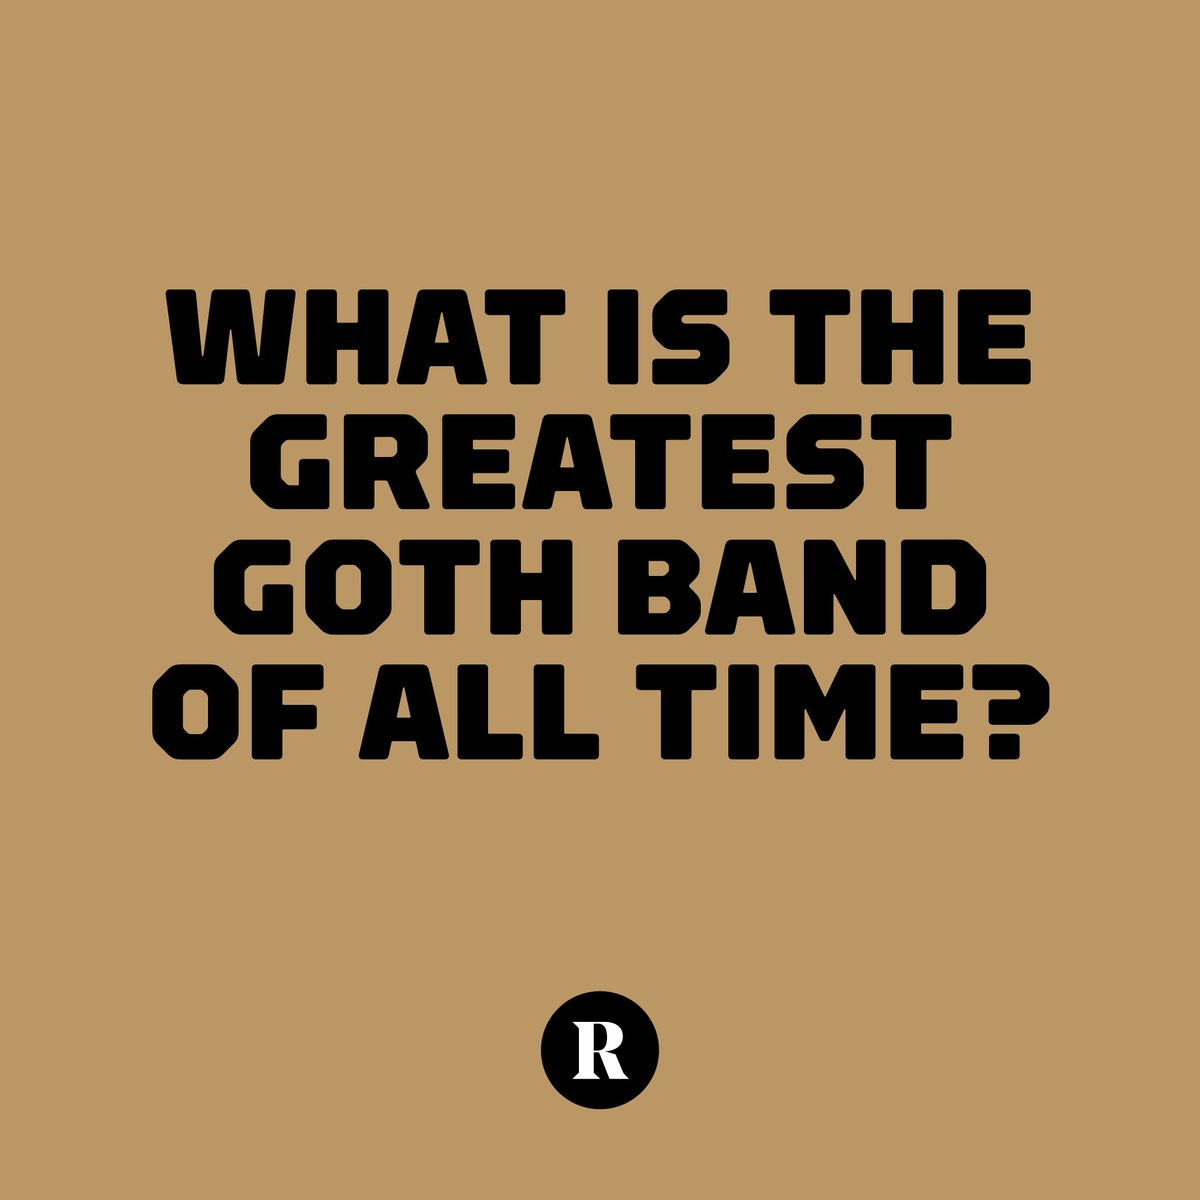 Revolvermag: In honor of #WorldGothDay, we ask you this. Tell us what you think and we'll tabulate the results next week.